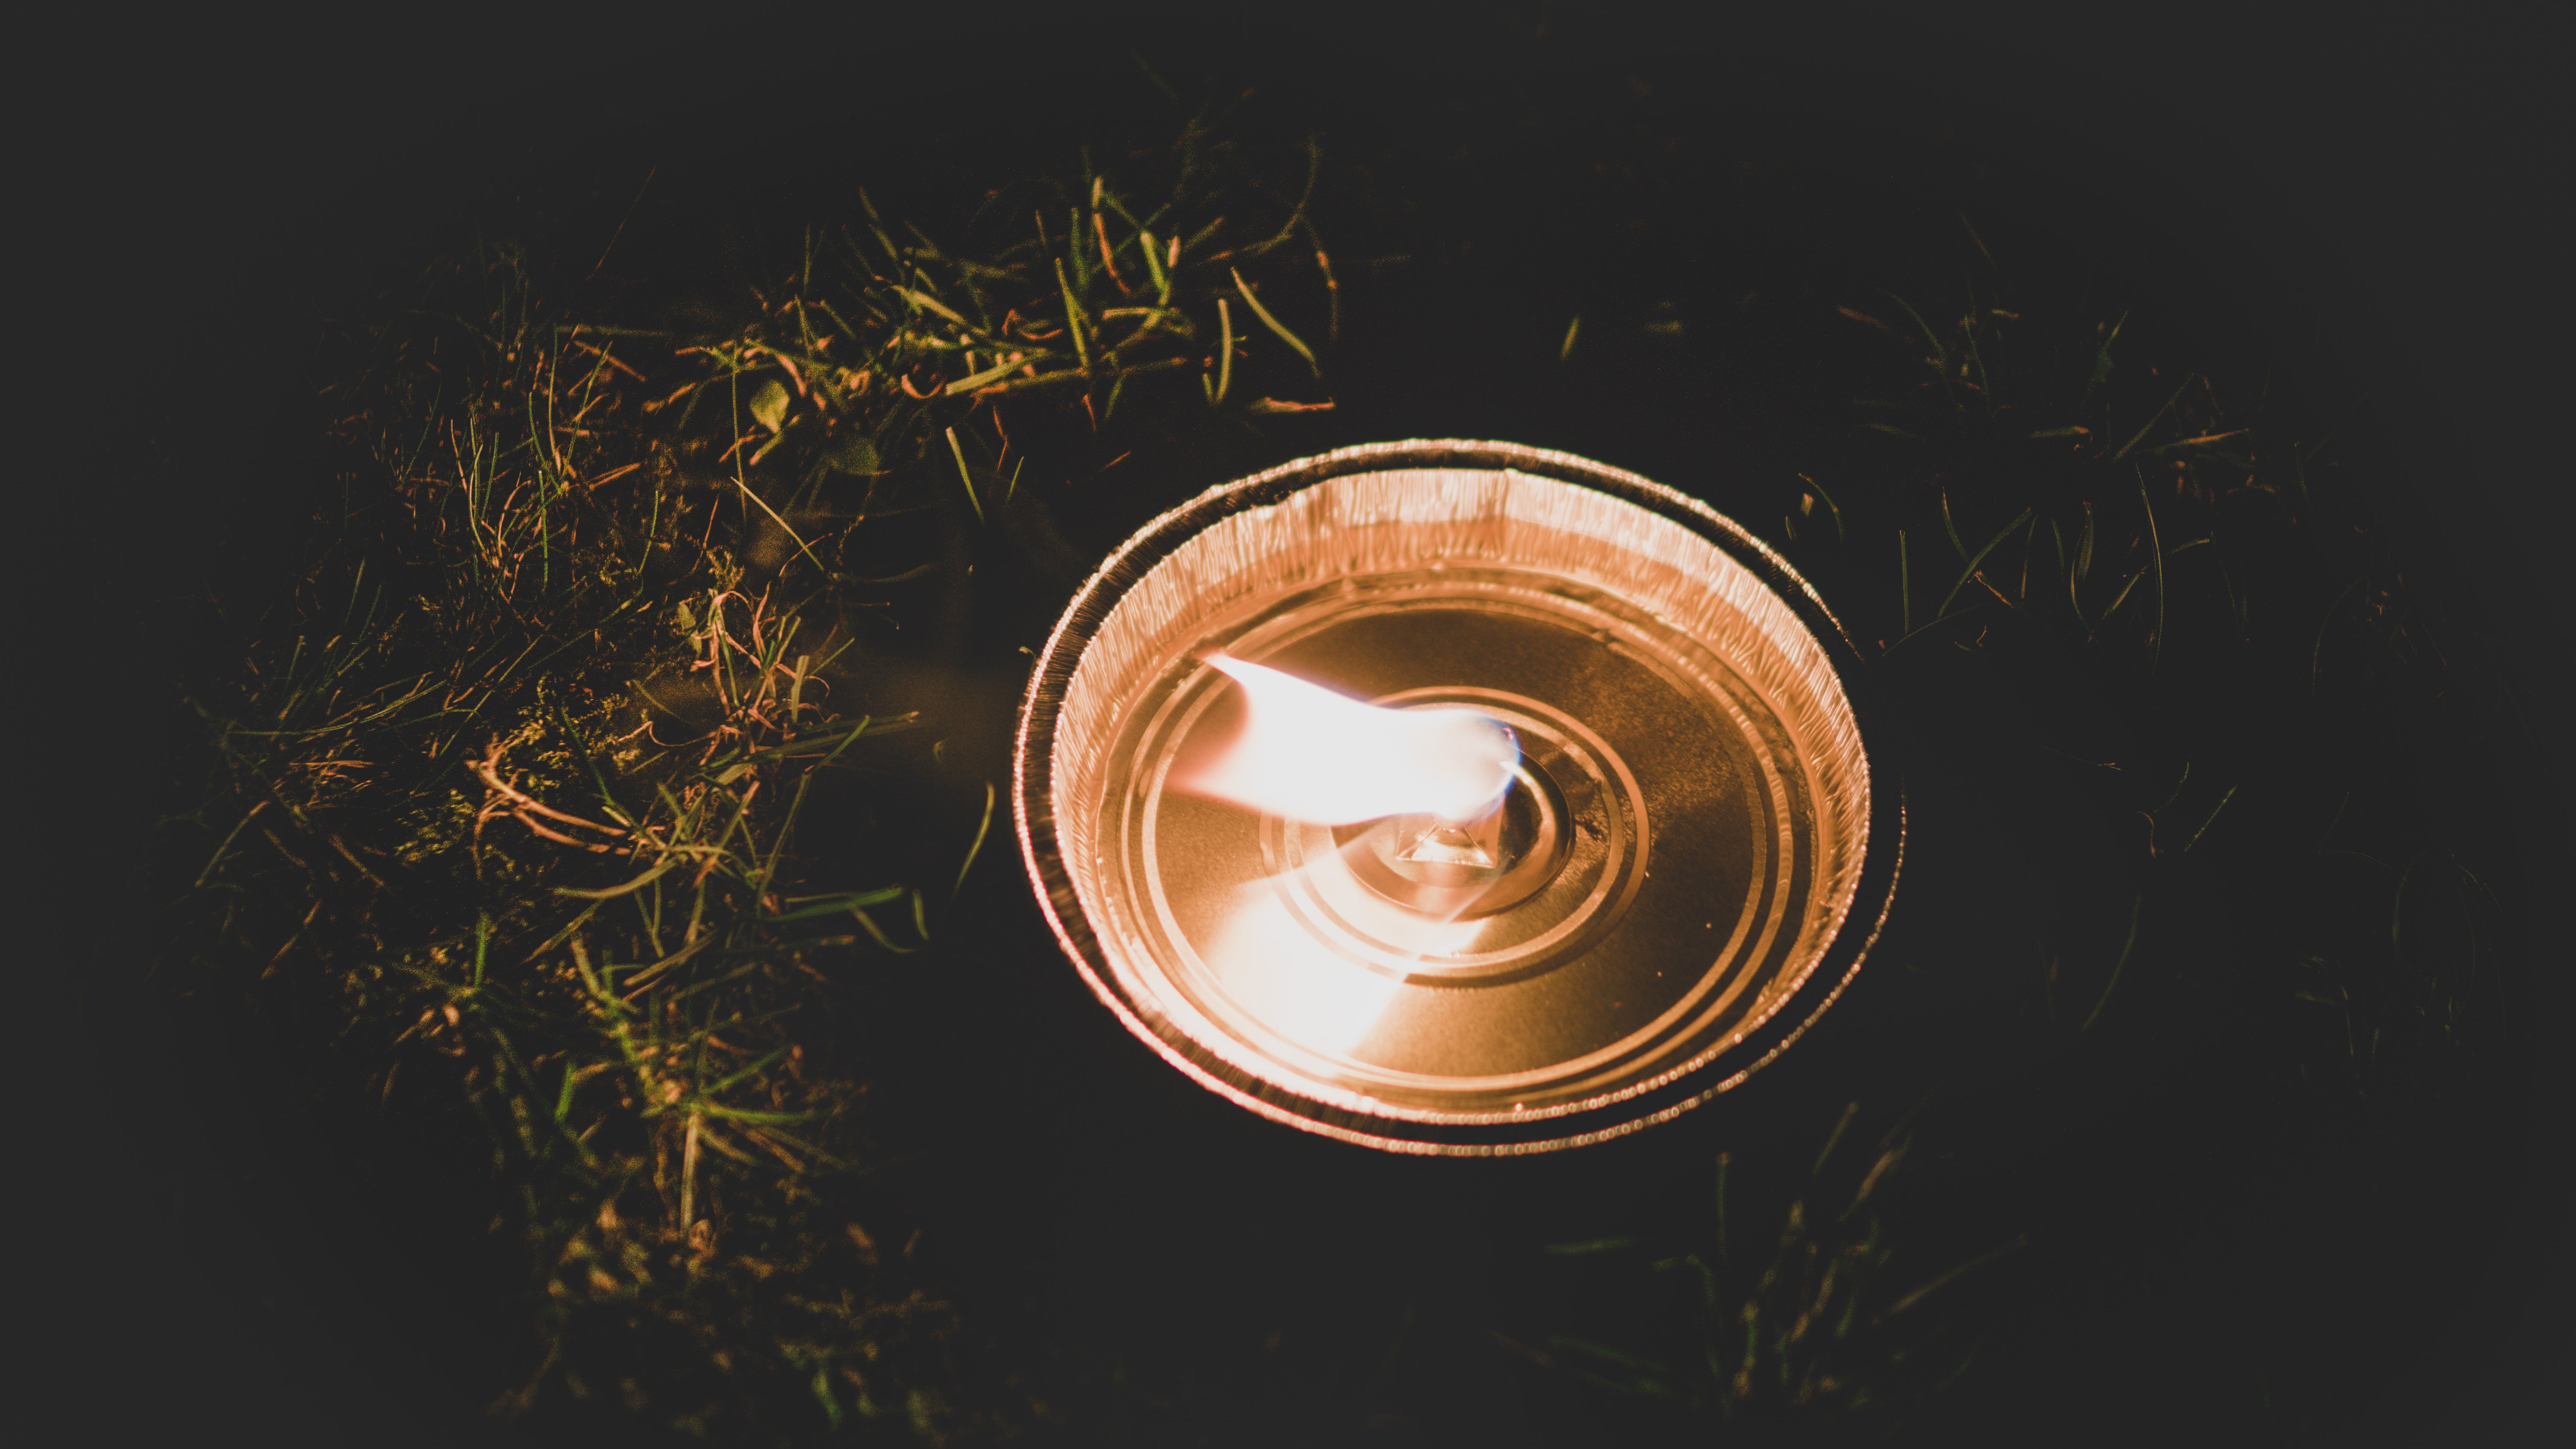 Free stock photo of light, night, dark, grass